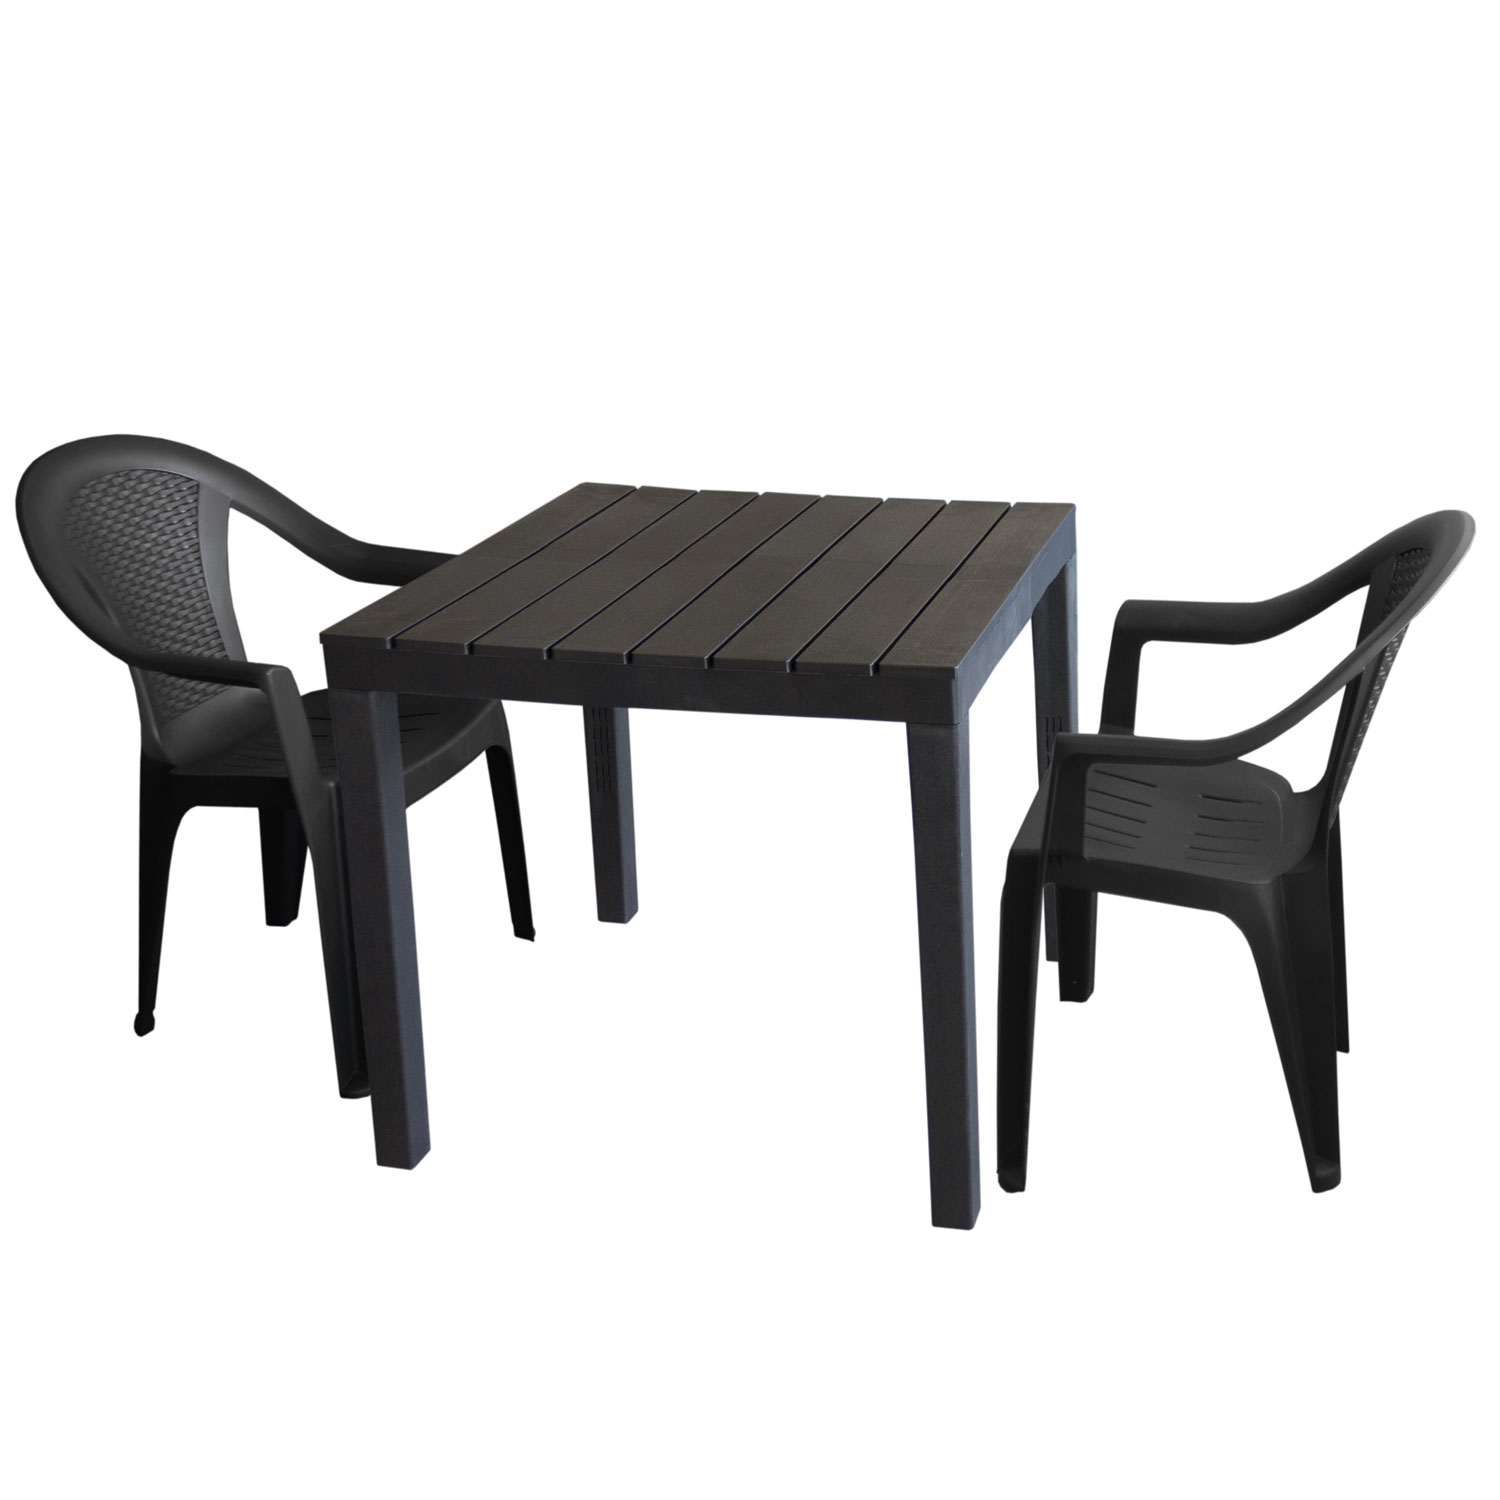 gartenm bel set kunststoff gartentisch 78x78cm 2x stapelstuhl ischia anthrazit garten bistro. Black Bedroom Furniture Sets. Home Design Ideas